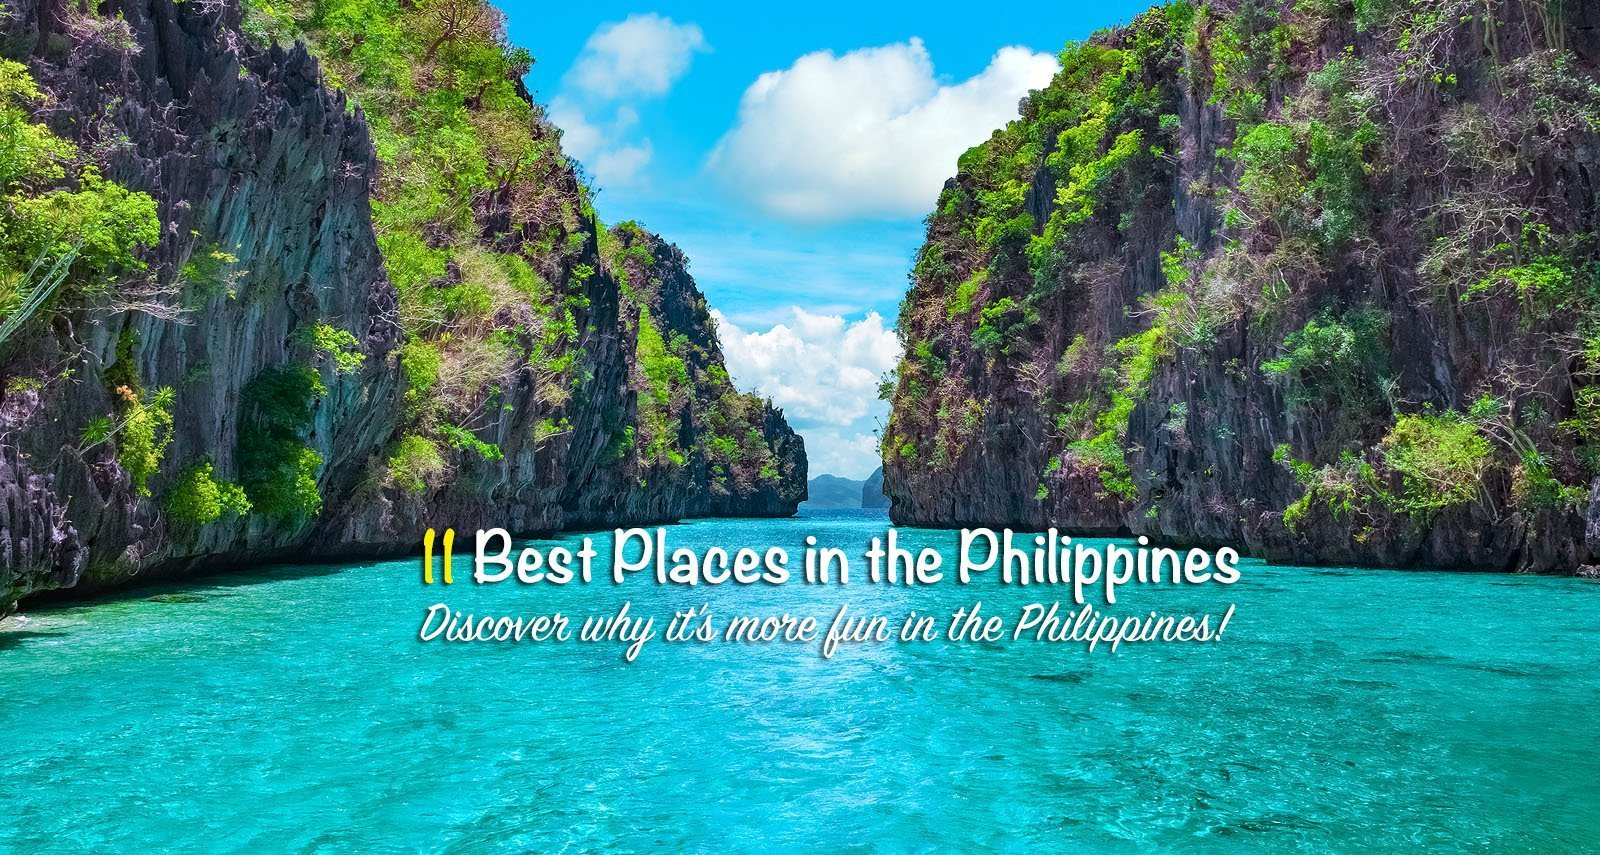 11 Best Places to Visit in the Philippines [And How To Get There]